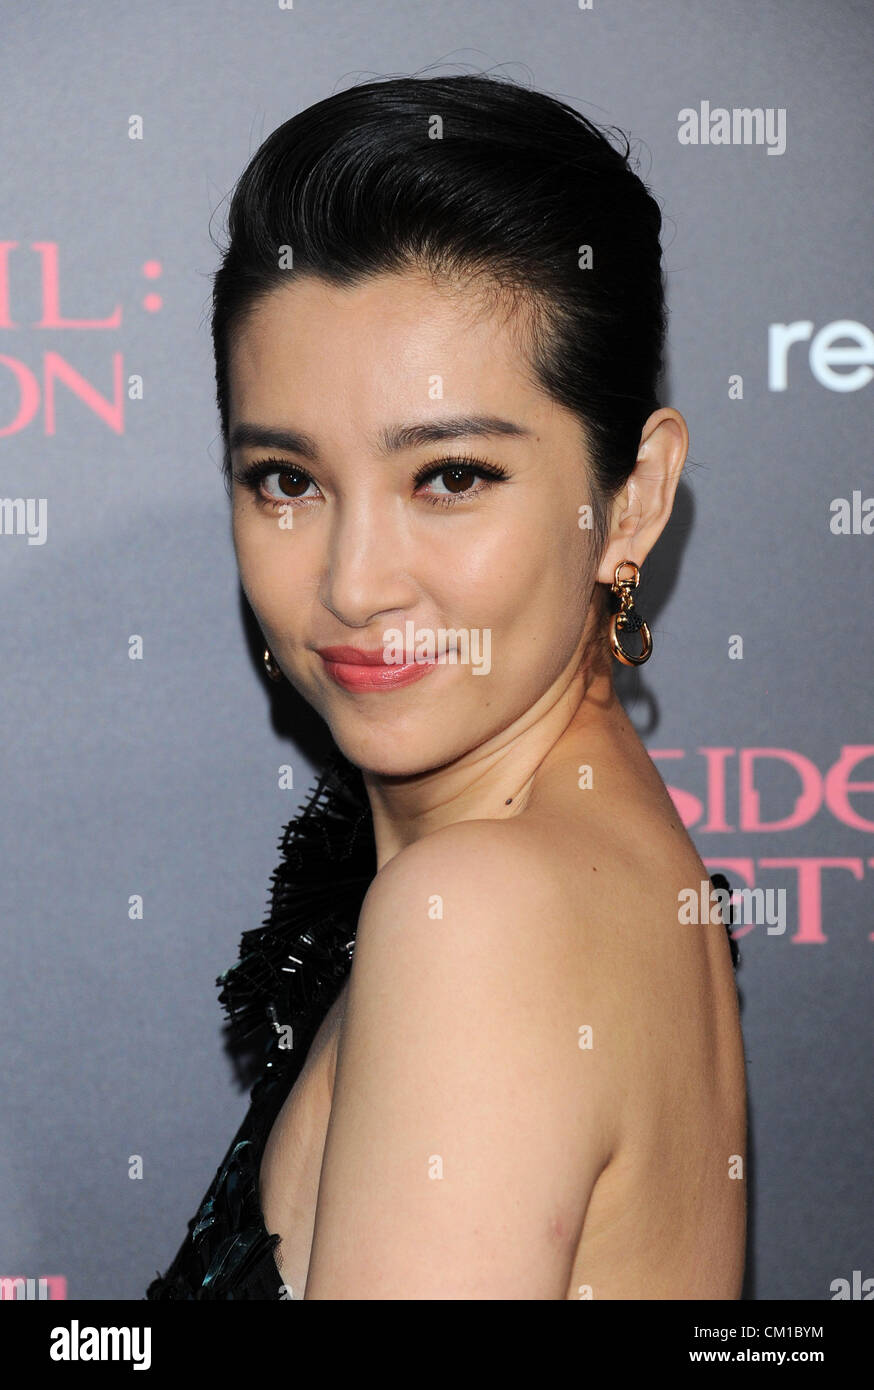 Li Bingbing High Resolution Stock Photography And Images